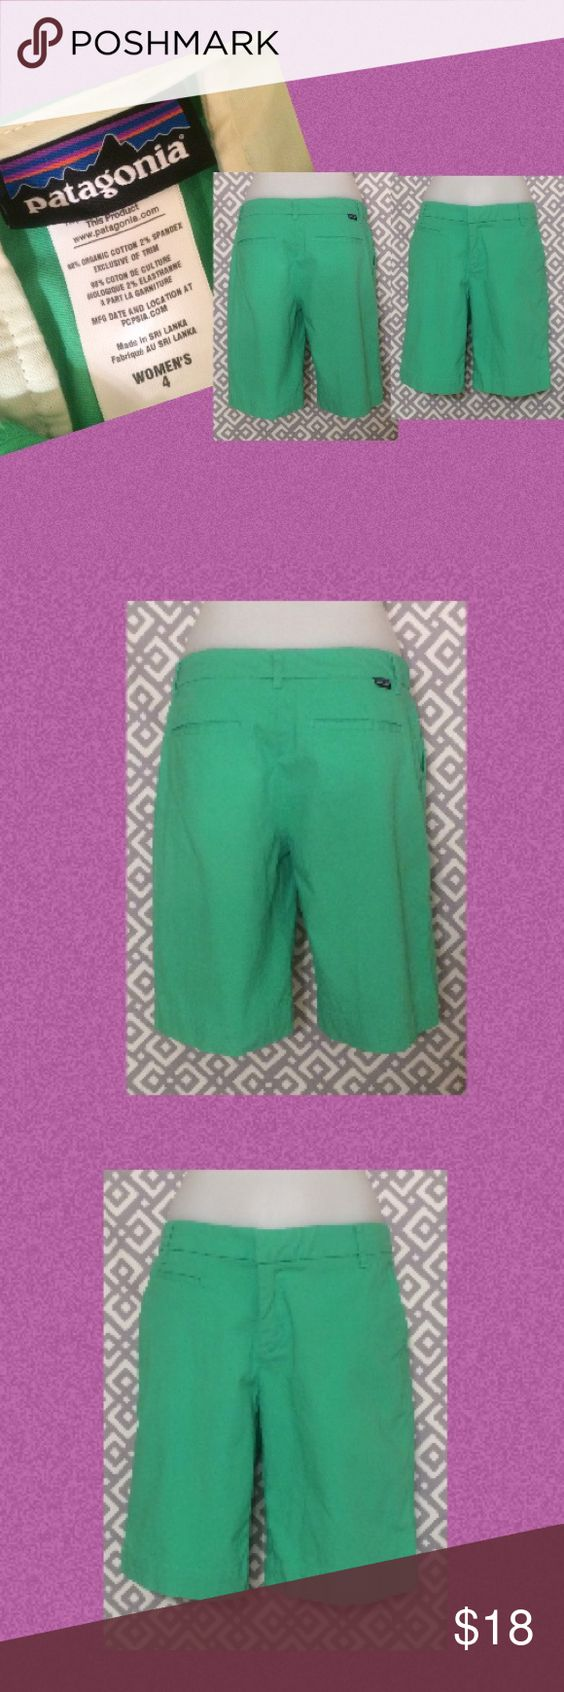 """Patagonia green shorts, 4 Green women's shorts; inseam is 10"""" and length from top to bottom is 18 inches. Patagonia Shorts"""